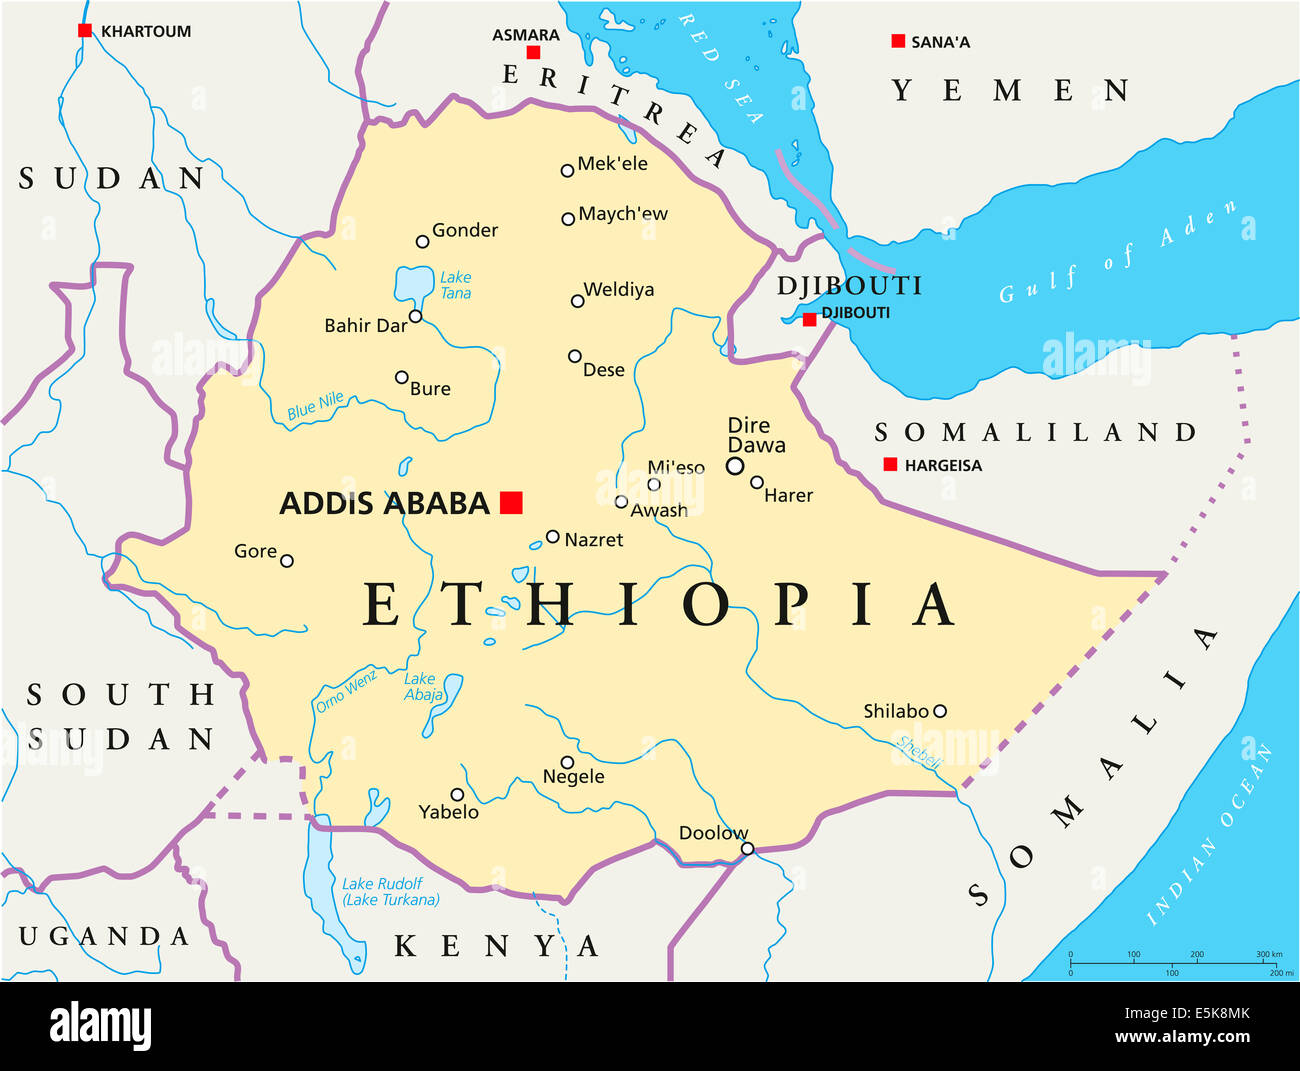 Ethiopia political map with capital addis ababa national borders ethiopia political map with capital addis ababa national borders most important cities rivers and lakes gumiabroncs Choice Image